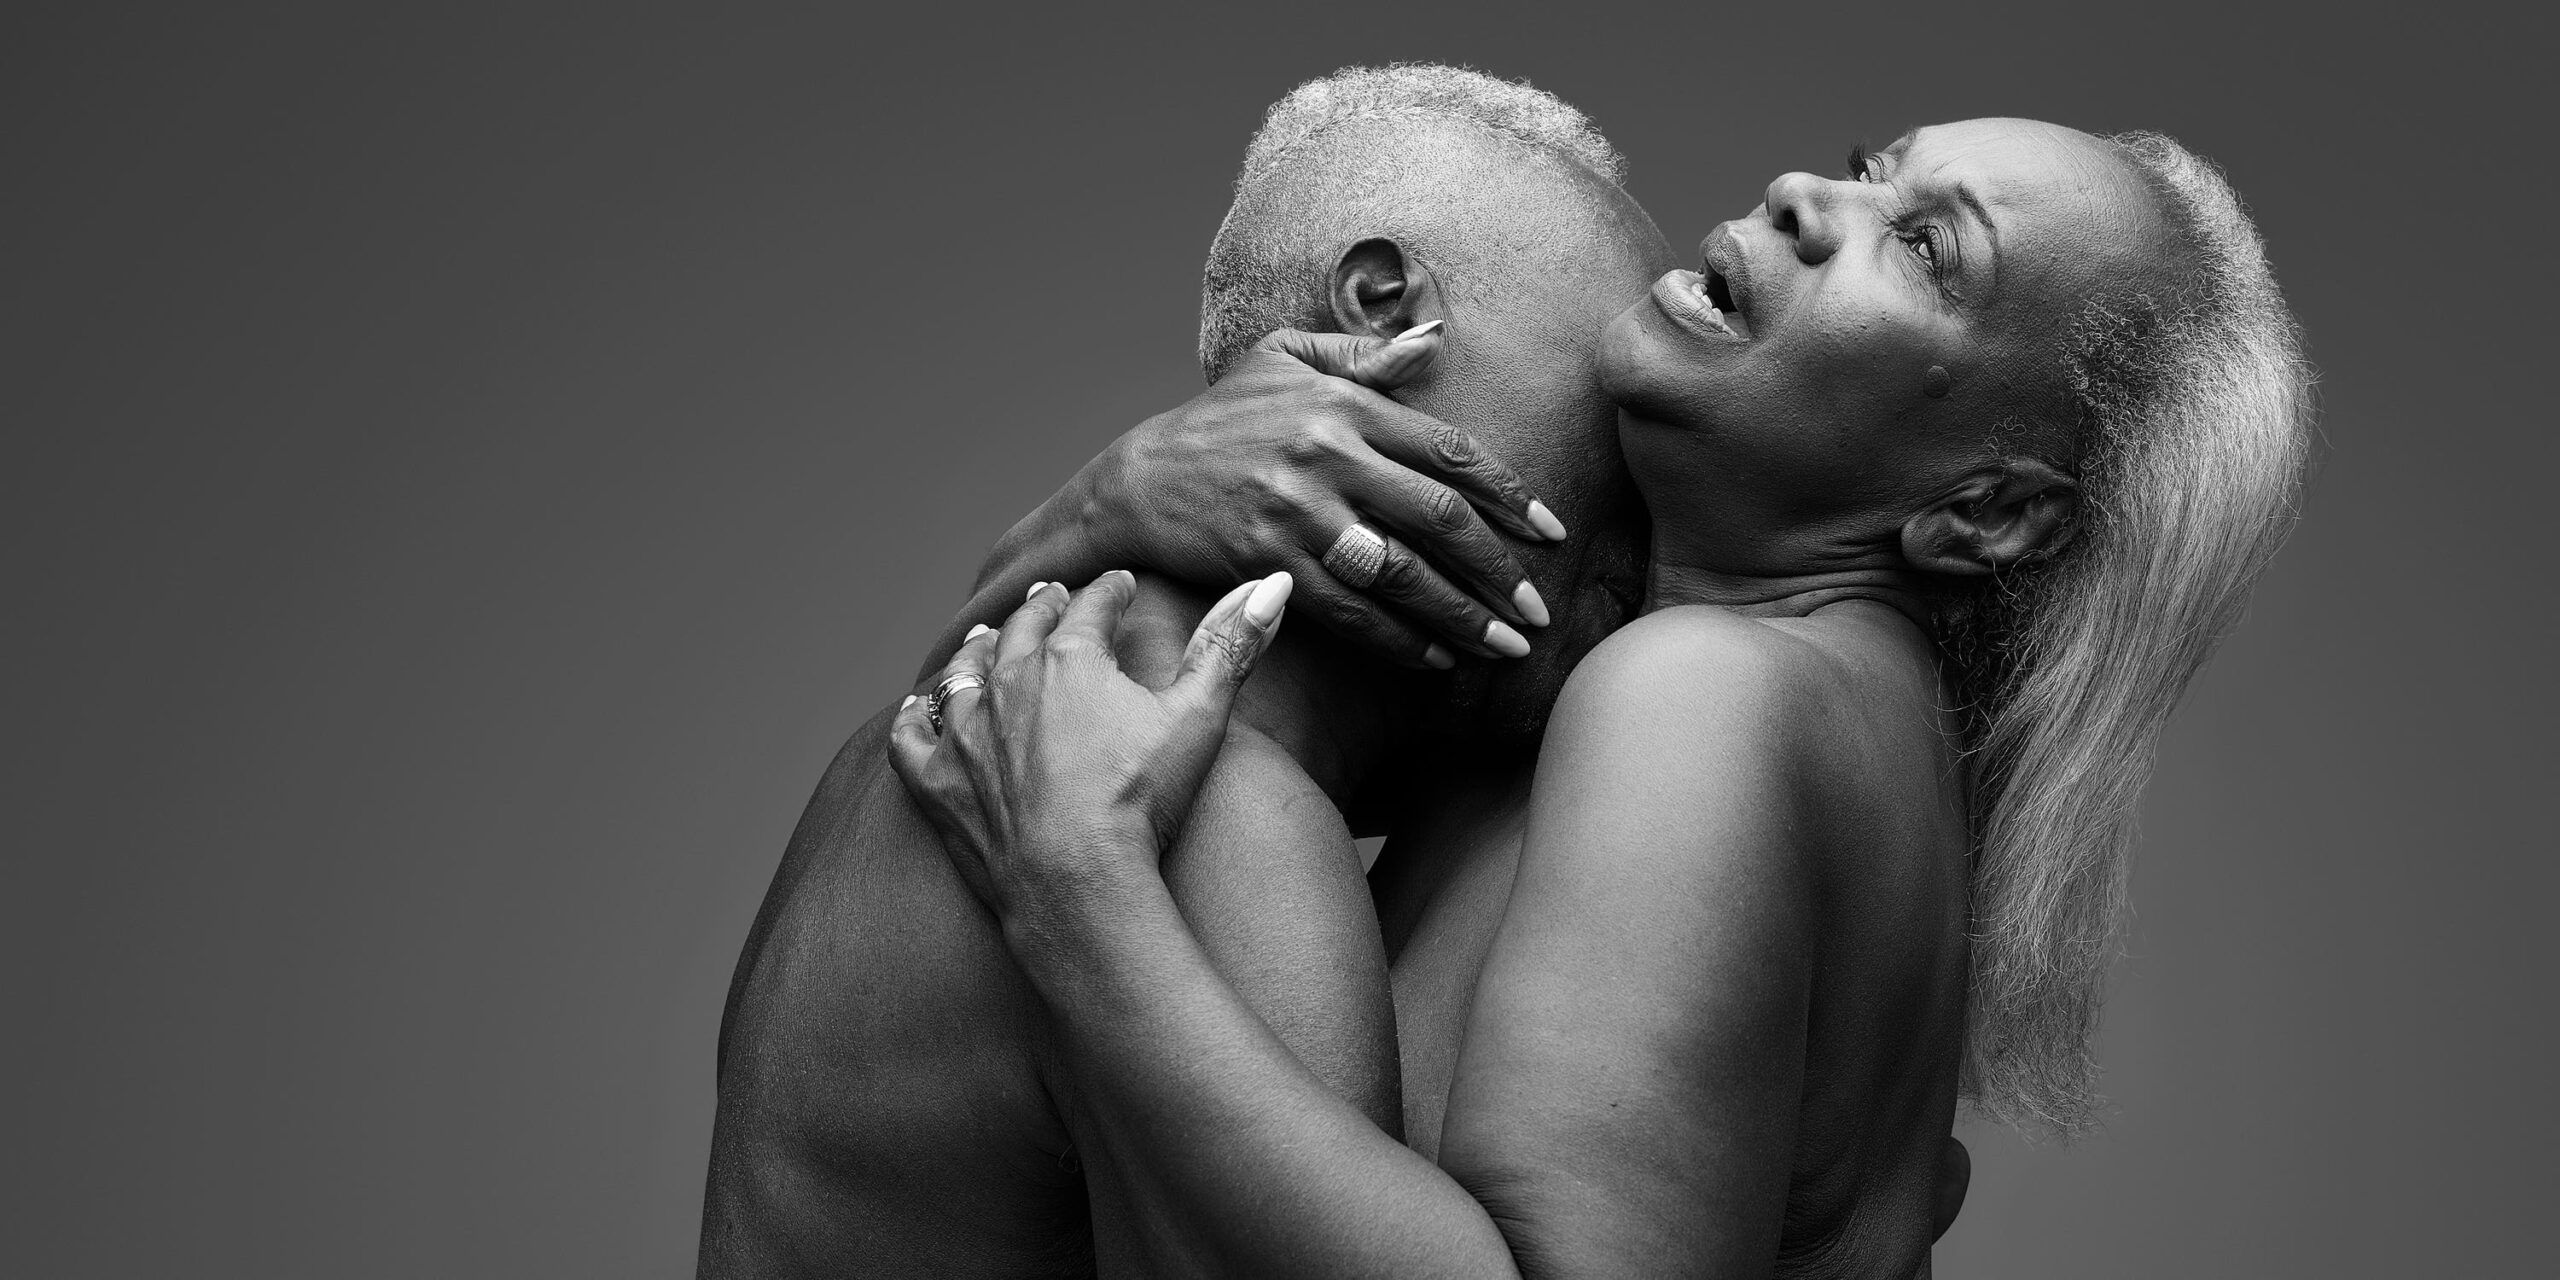 Rankin And Relate's Campaign Celebrating Intimacy